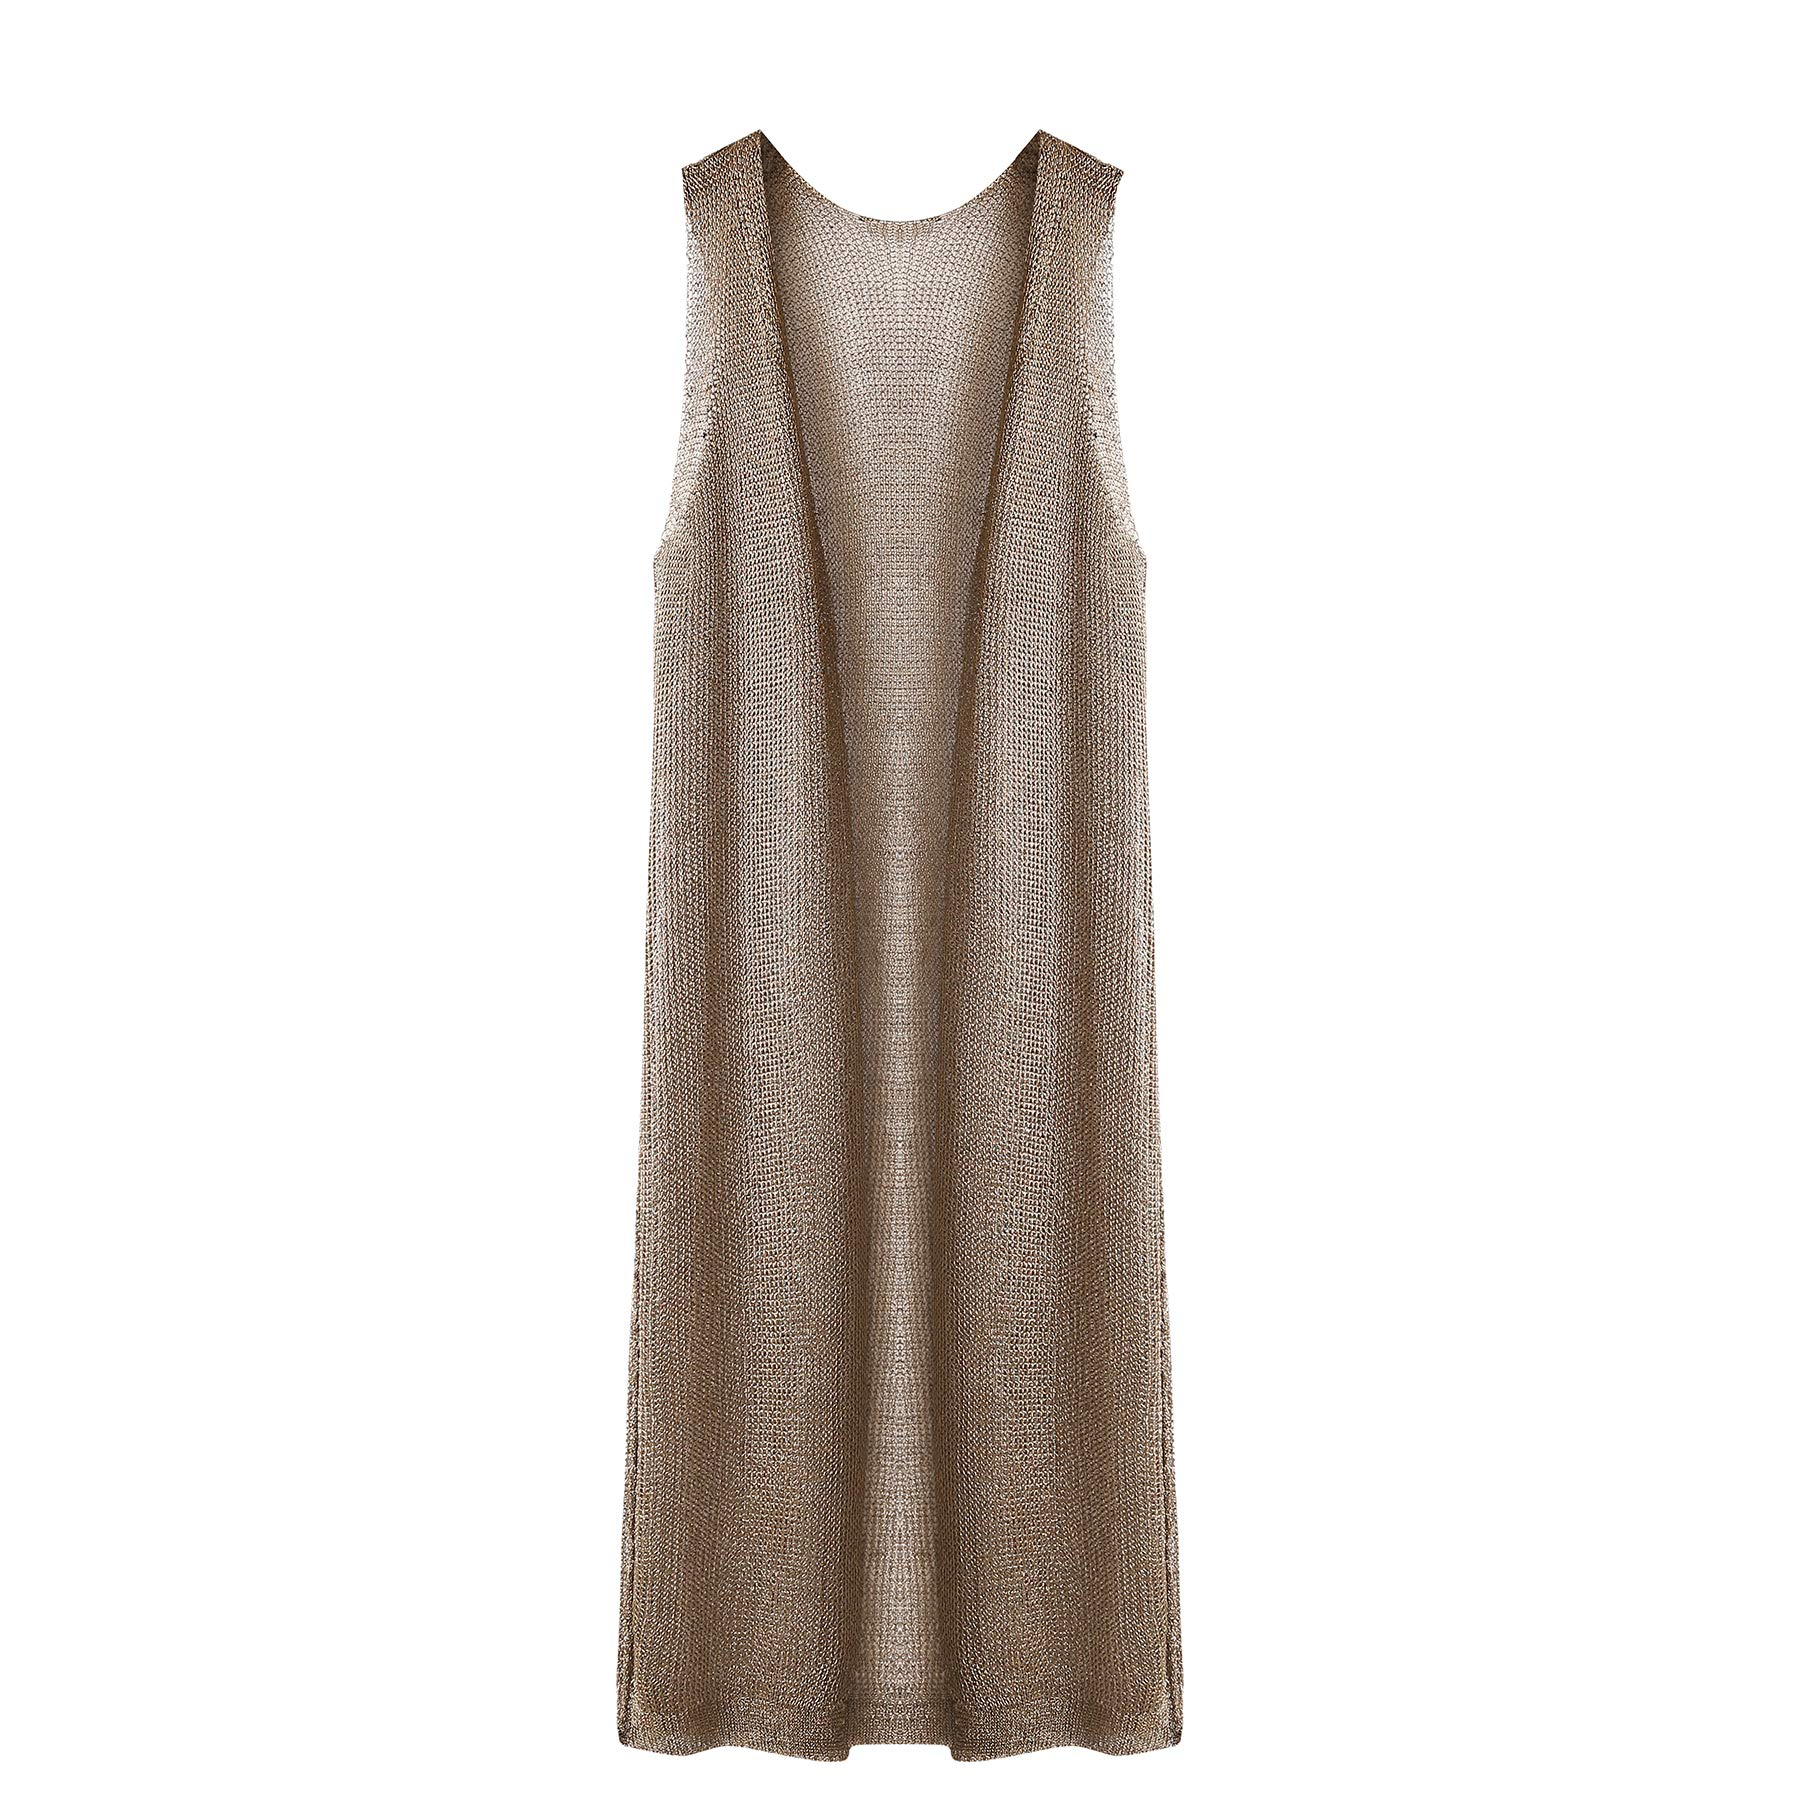 KUNLIHUANG Women Sleeveless Long Drape Open Front Knitted Cardigan Sweater Duster Vest